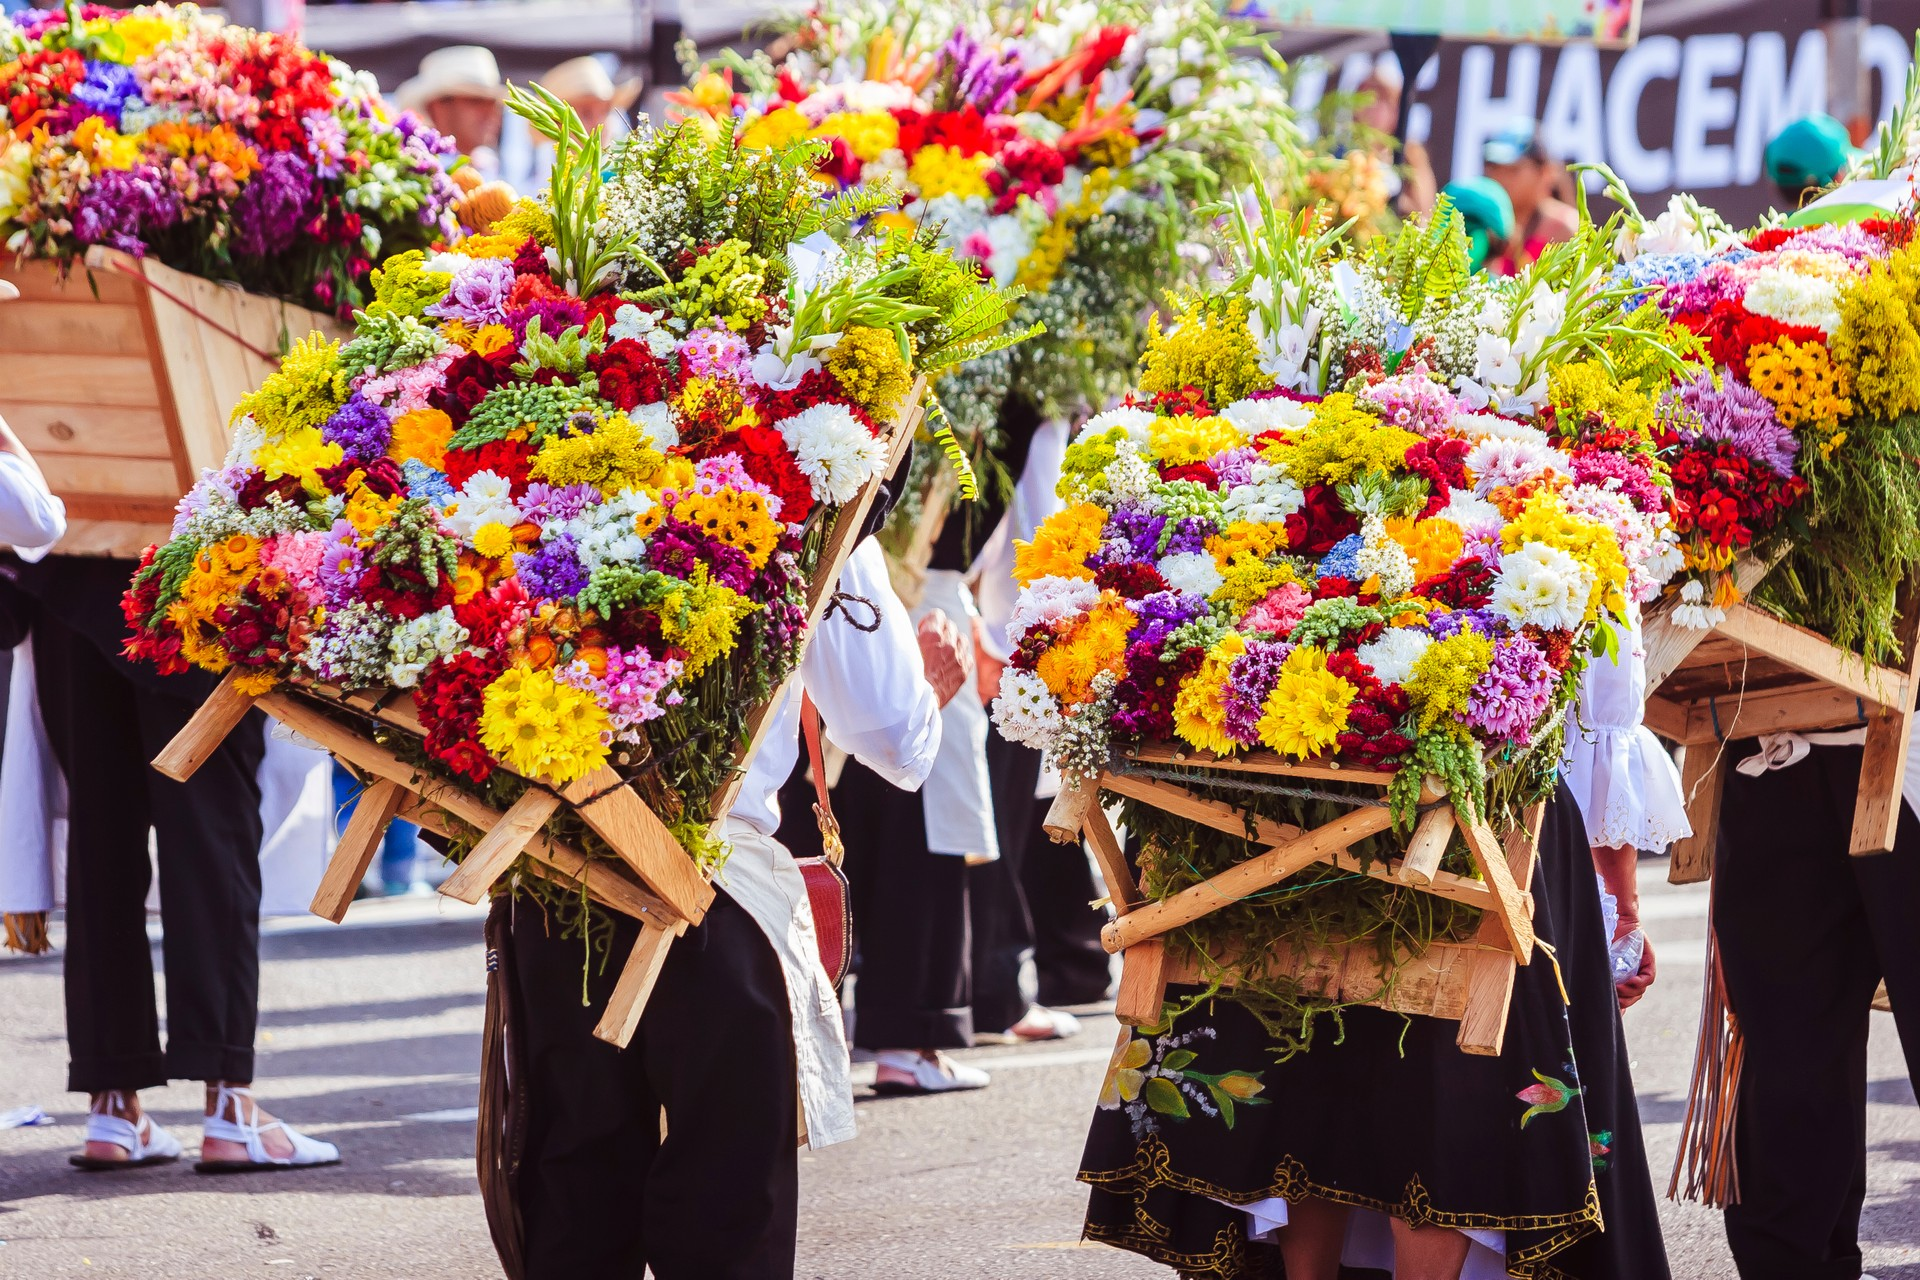 Parade in Medellin's flower festival